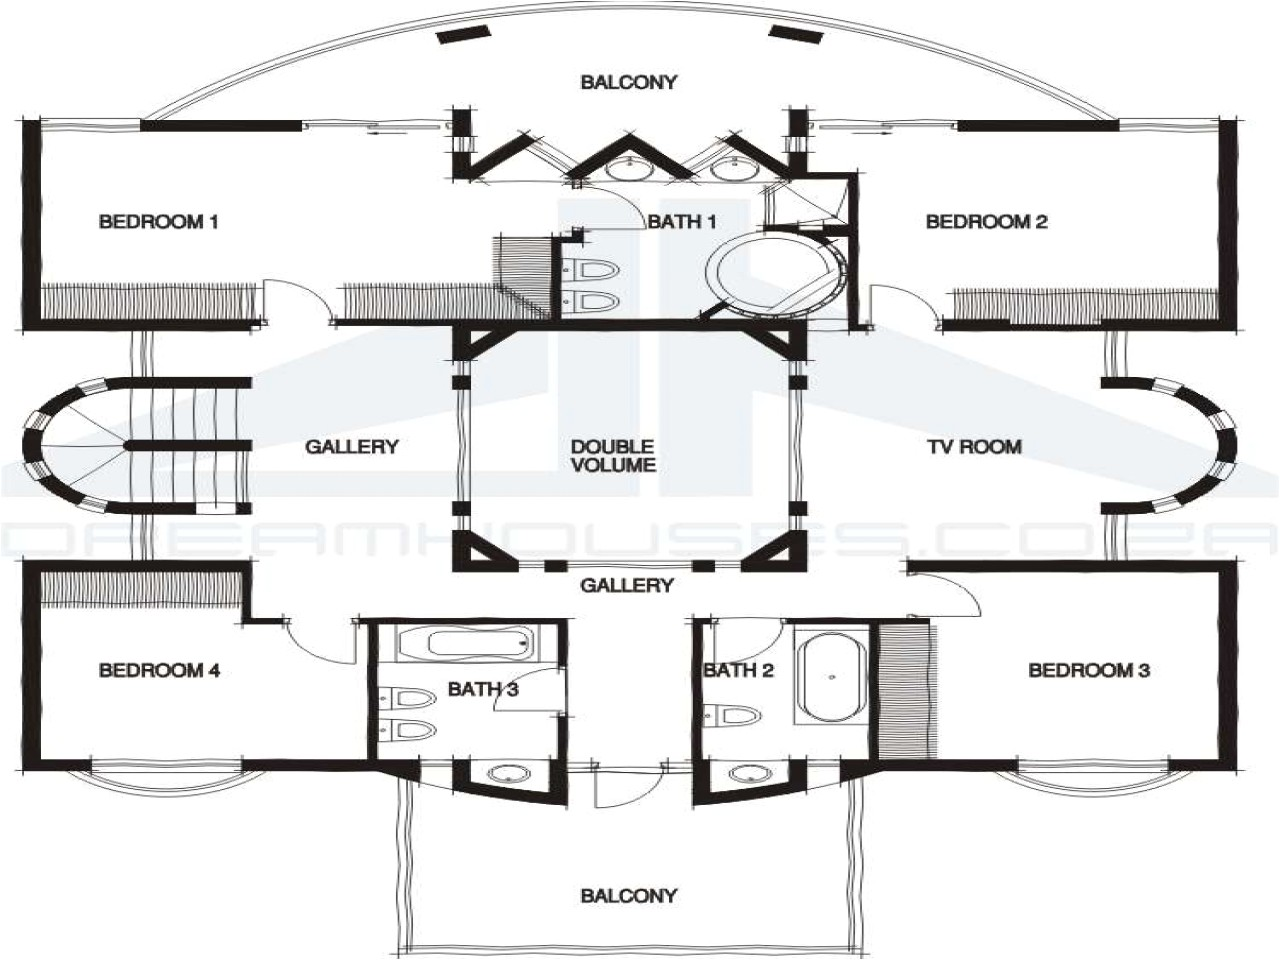 26853aab271b1df3 house plans and designs virtual house plans